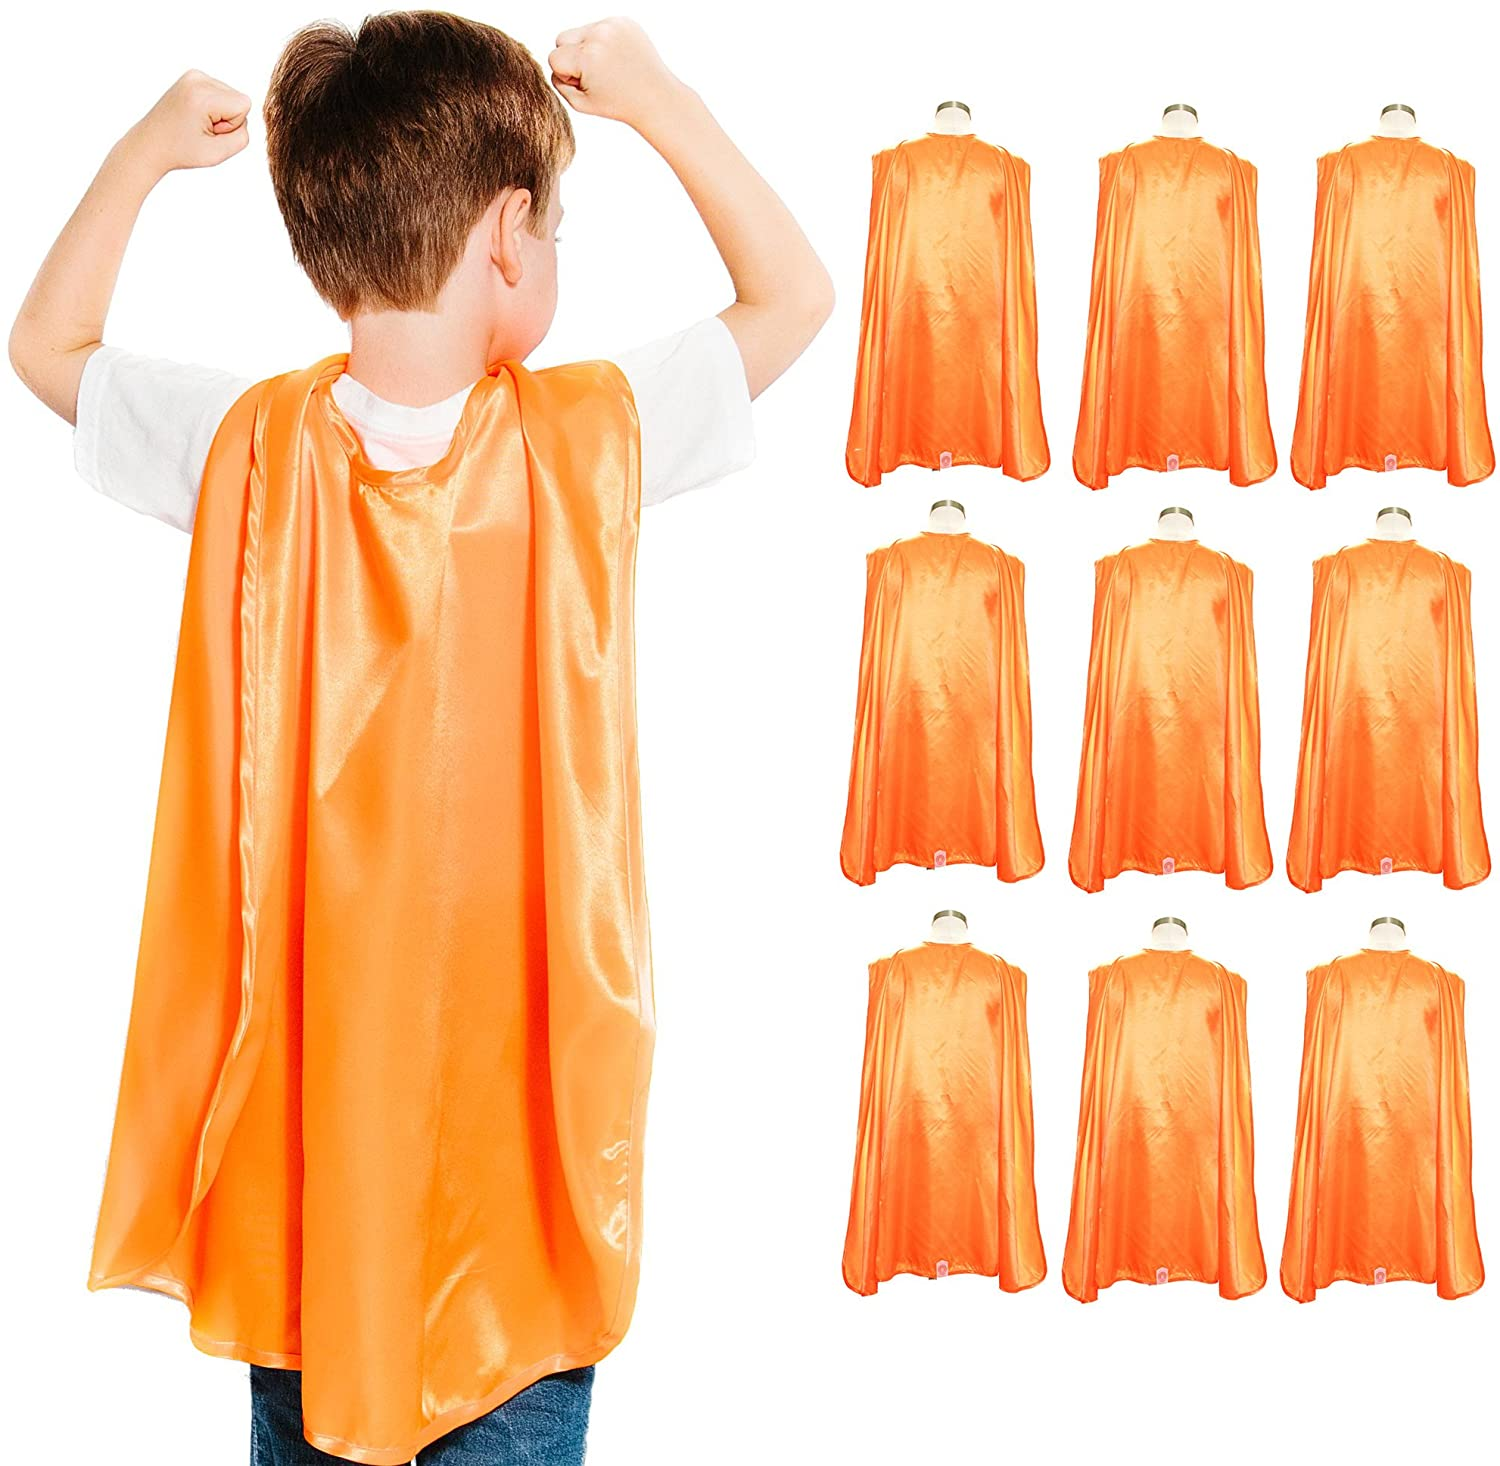 Everfan Youth Superhero Cape Party Pack | Set of 10 Polyester Satin Capes - Kids (Orange)